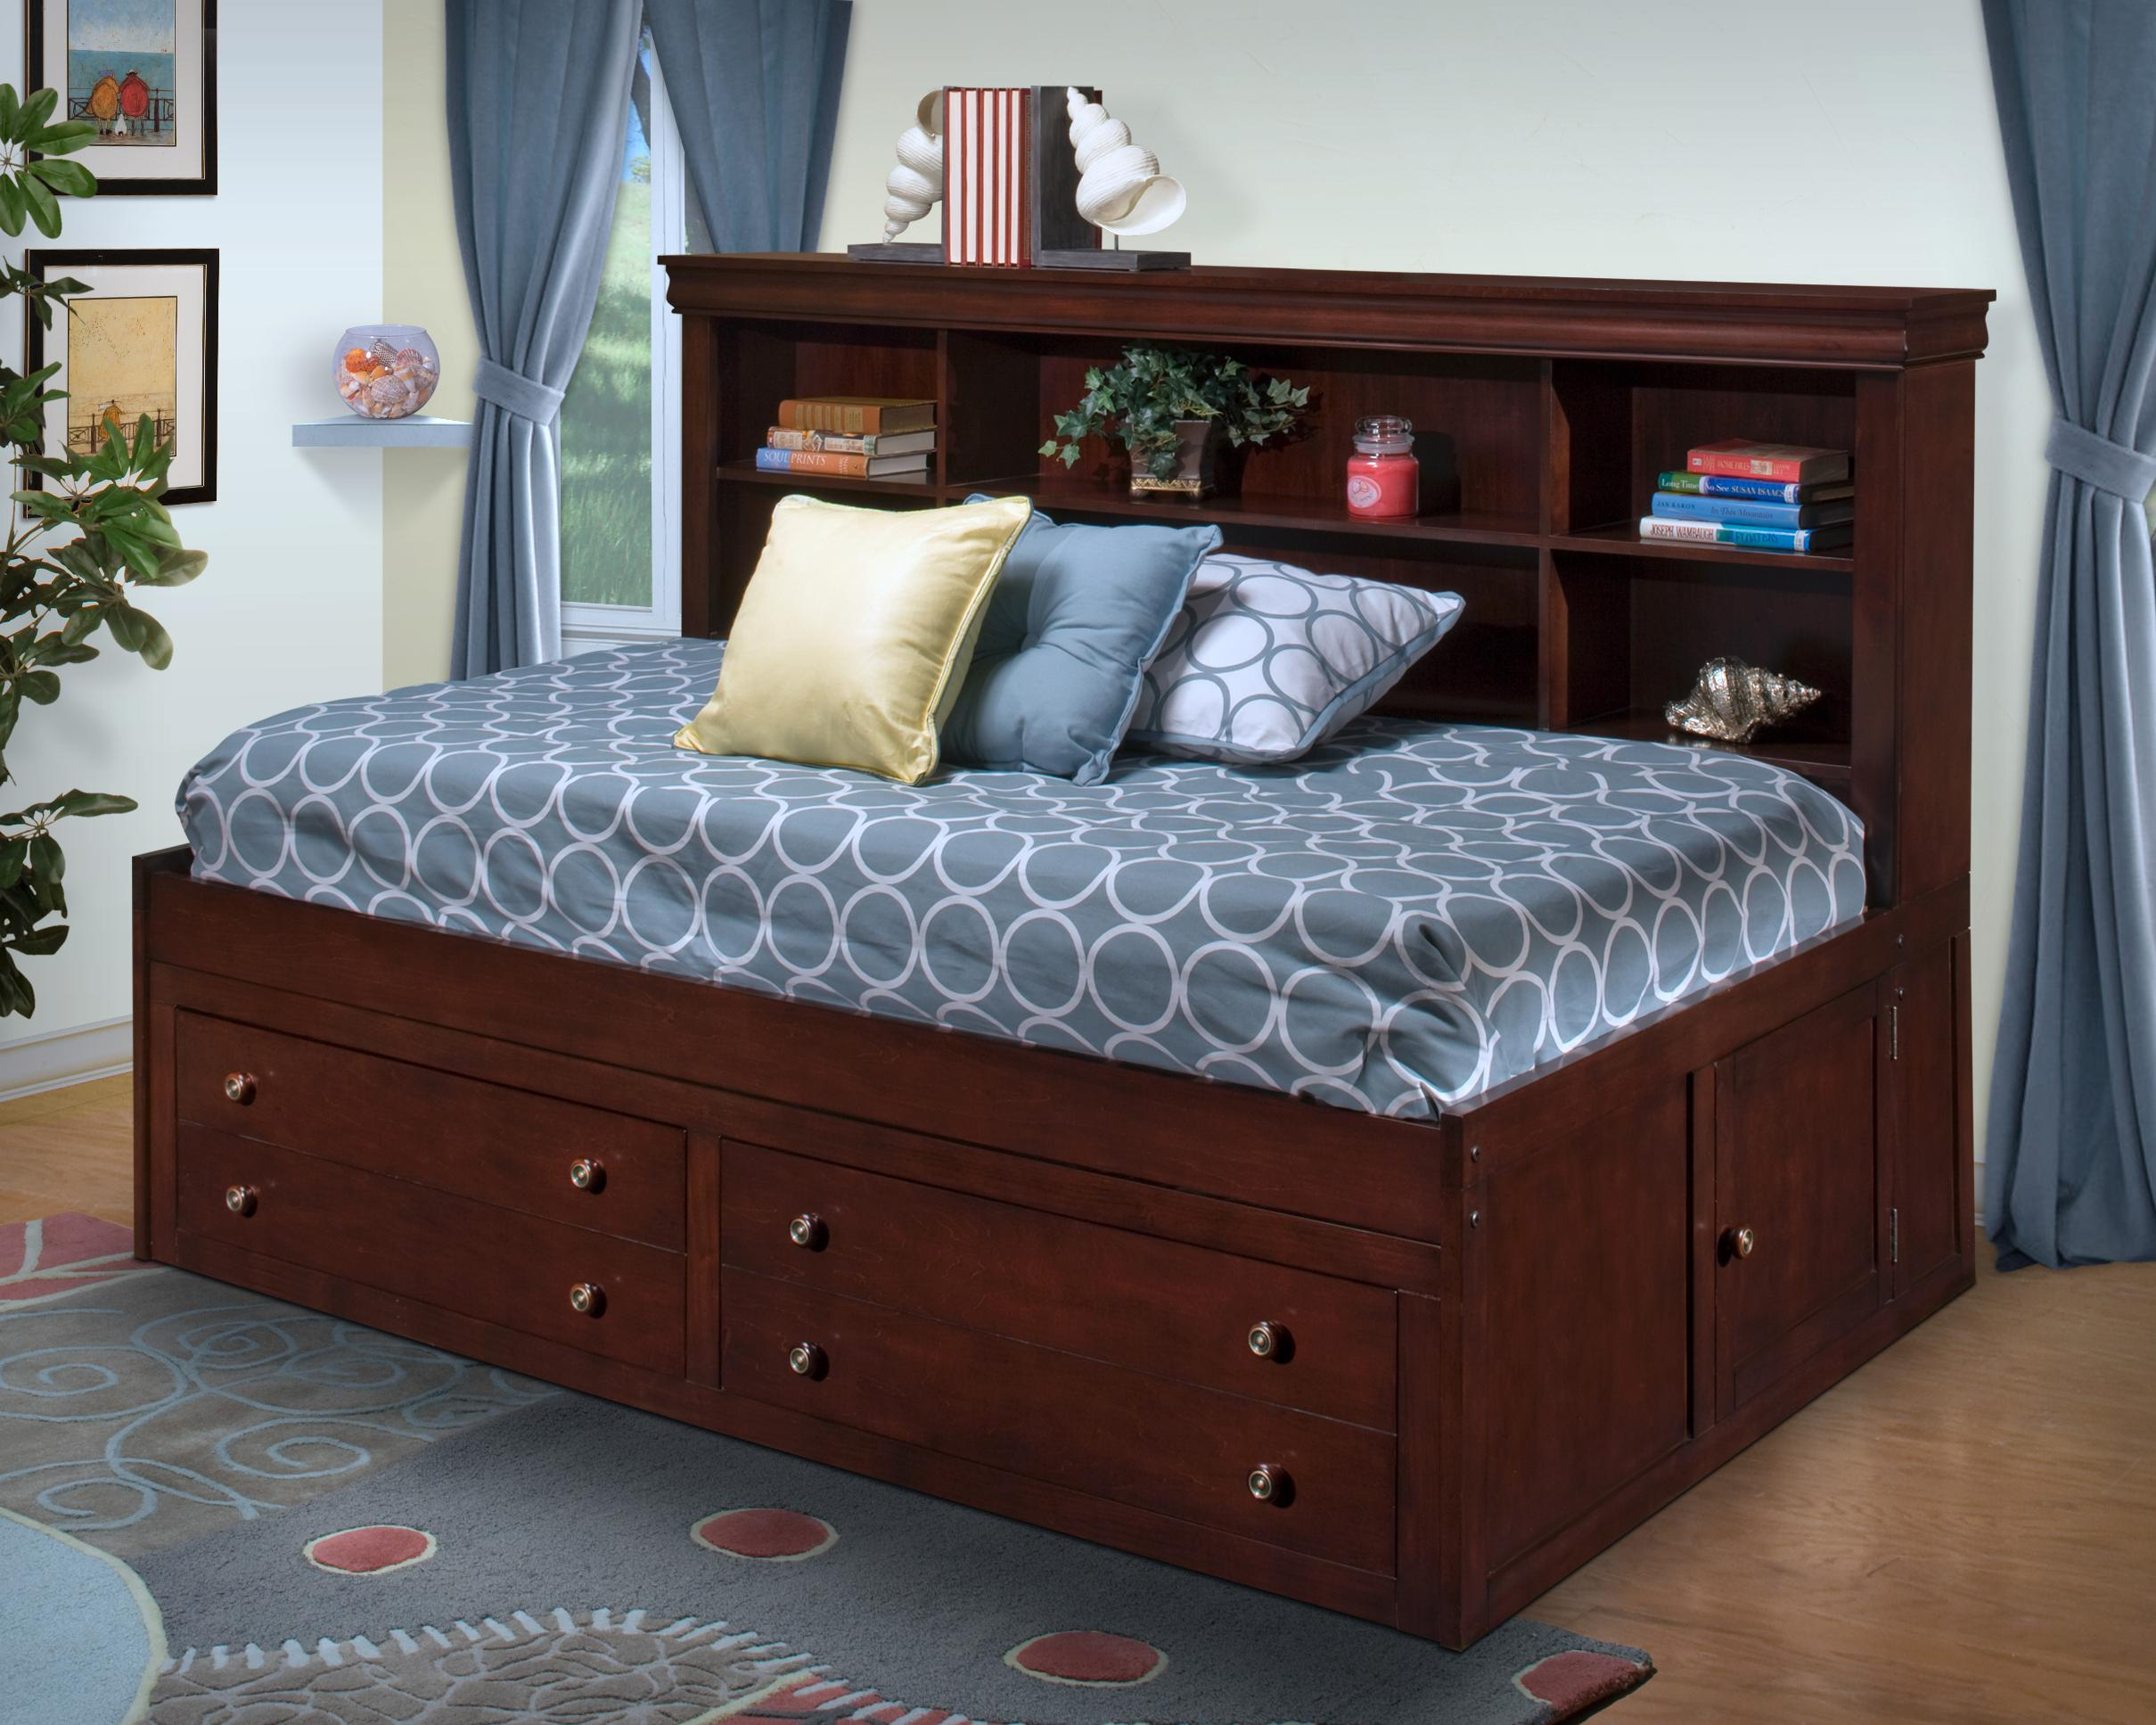 bordeaux louis philippe style bedroom furniture collection. Versaille (1040) By New Classic - Adcock Furniture Dealer Bordeaux Louis Philippe Style Bedroom Collection